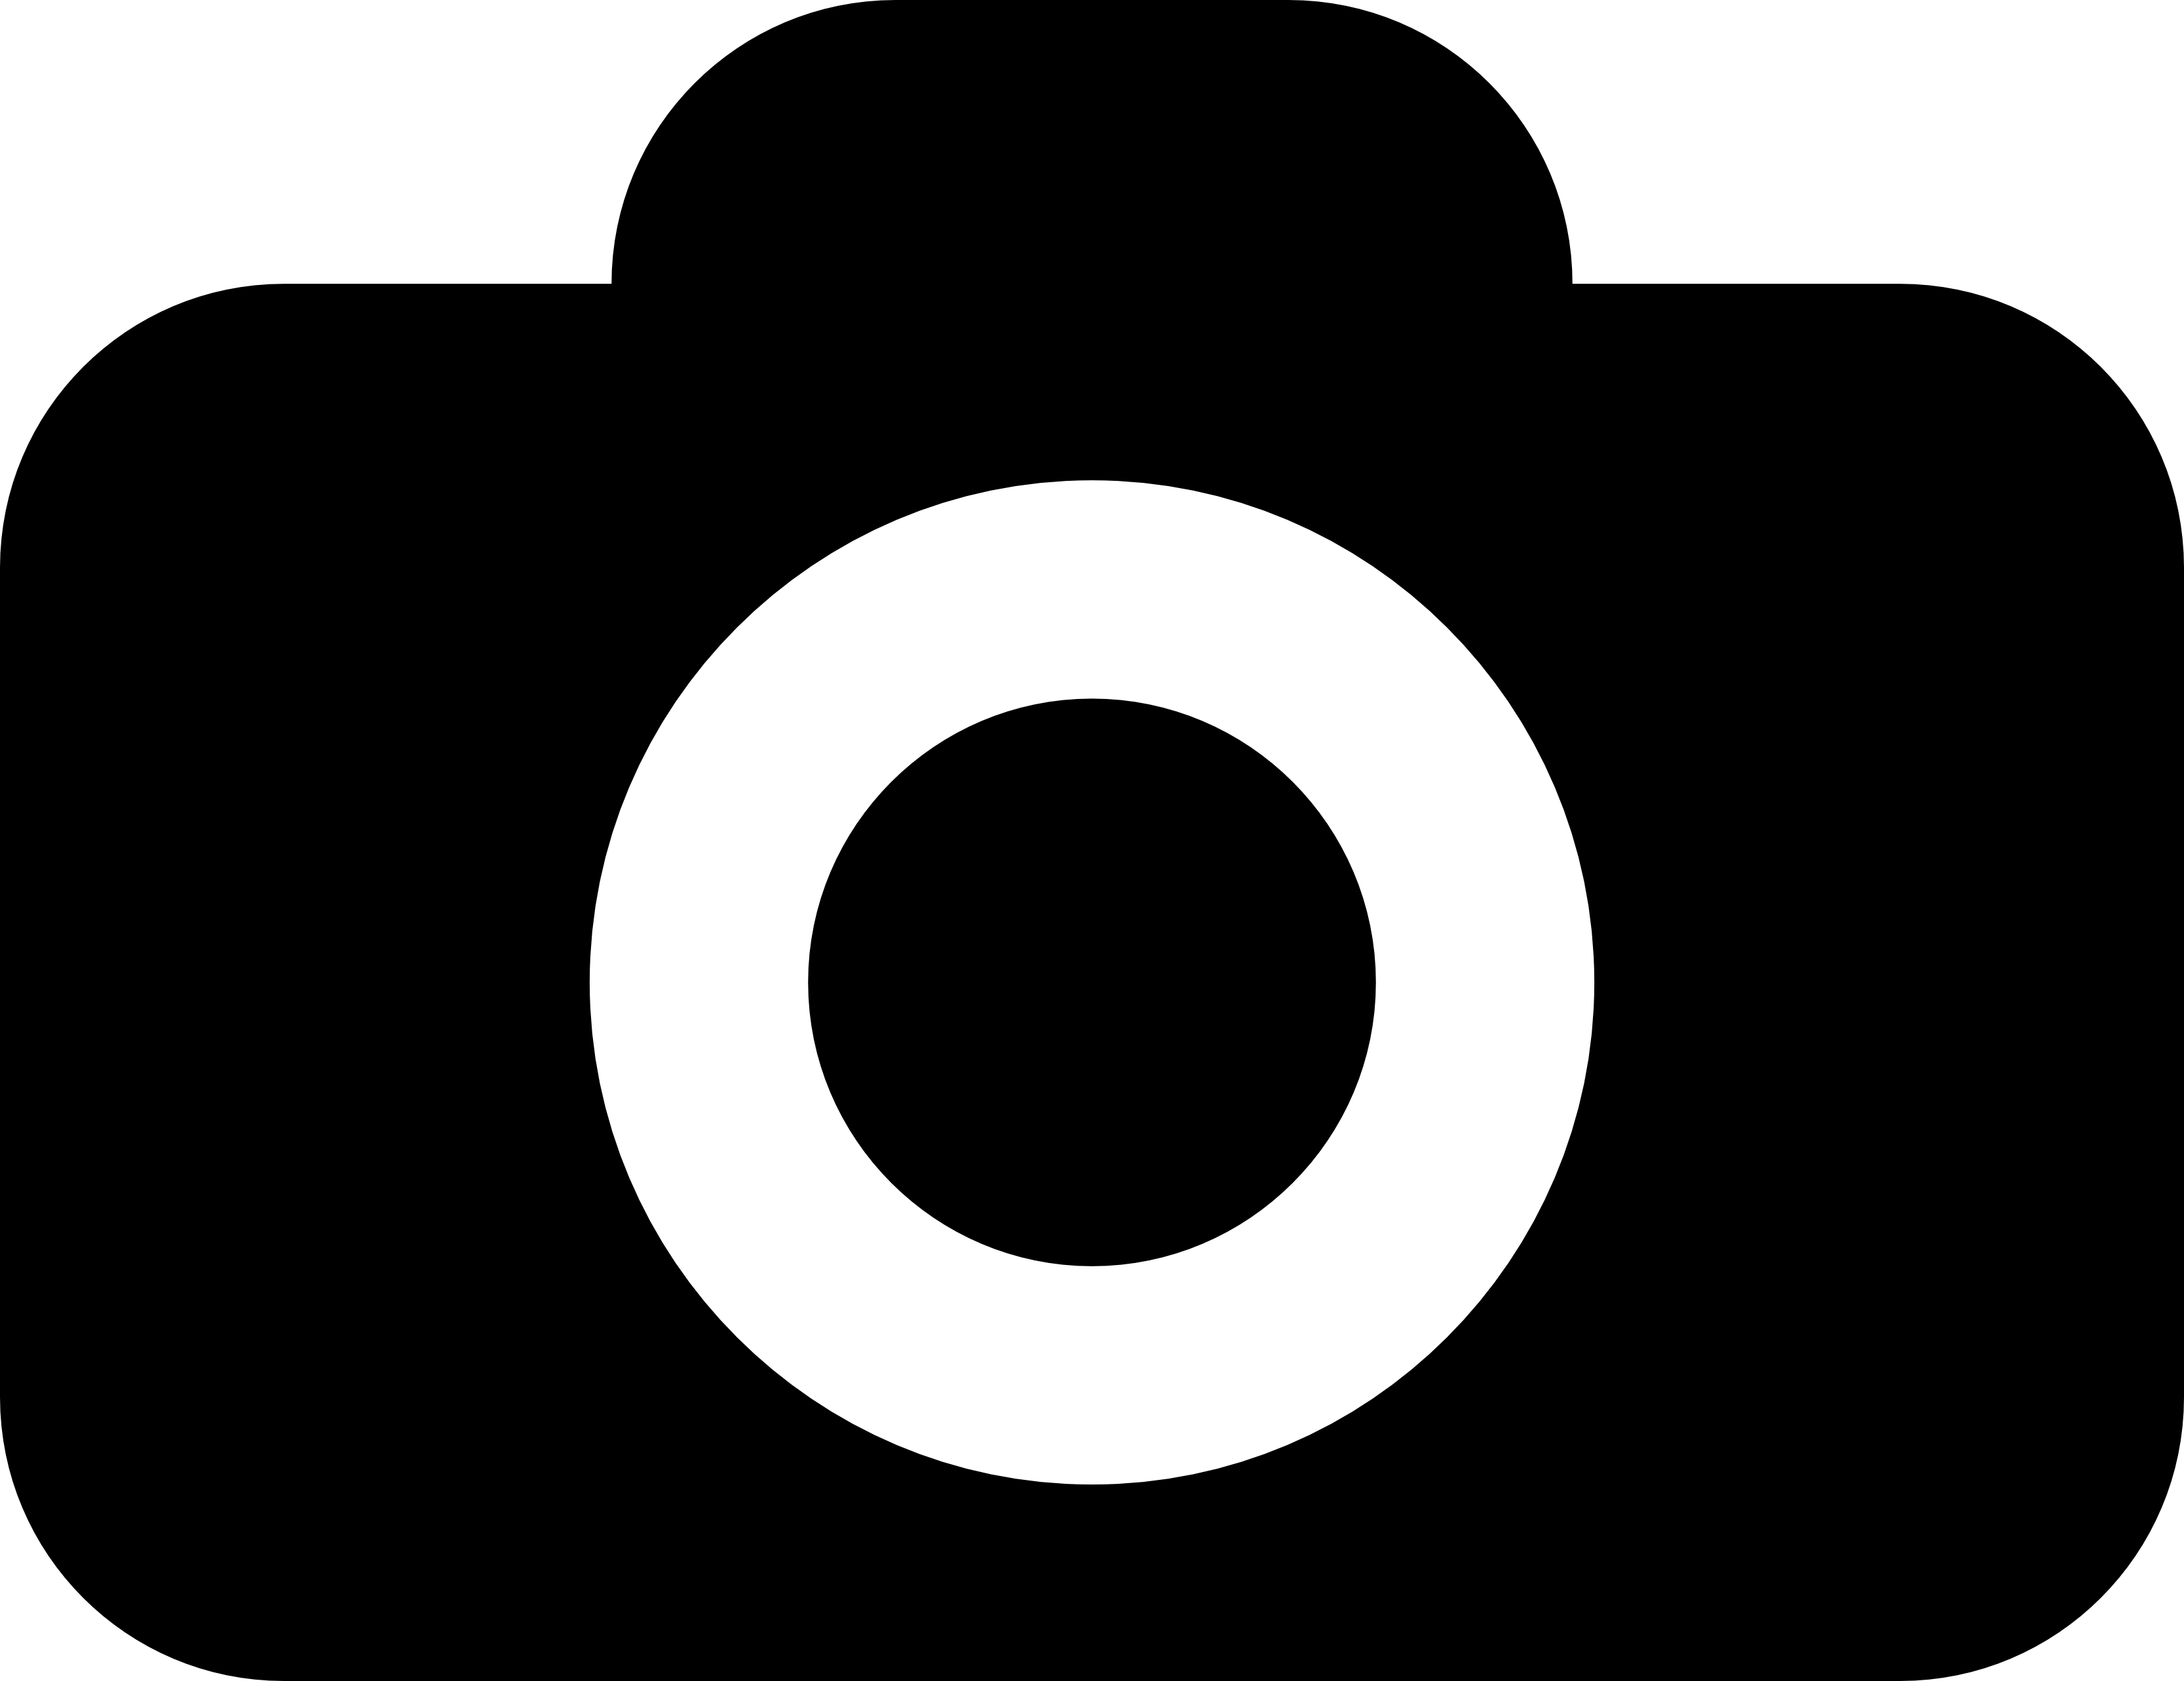 Camera clipart black and white png. Yioklqeie allan law is